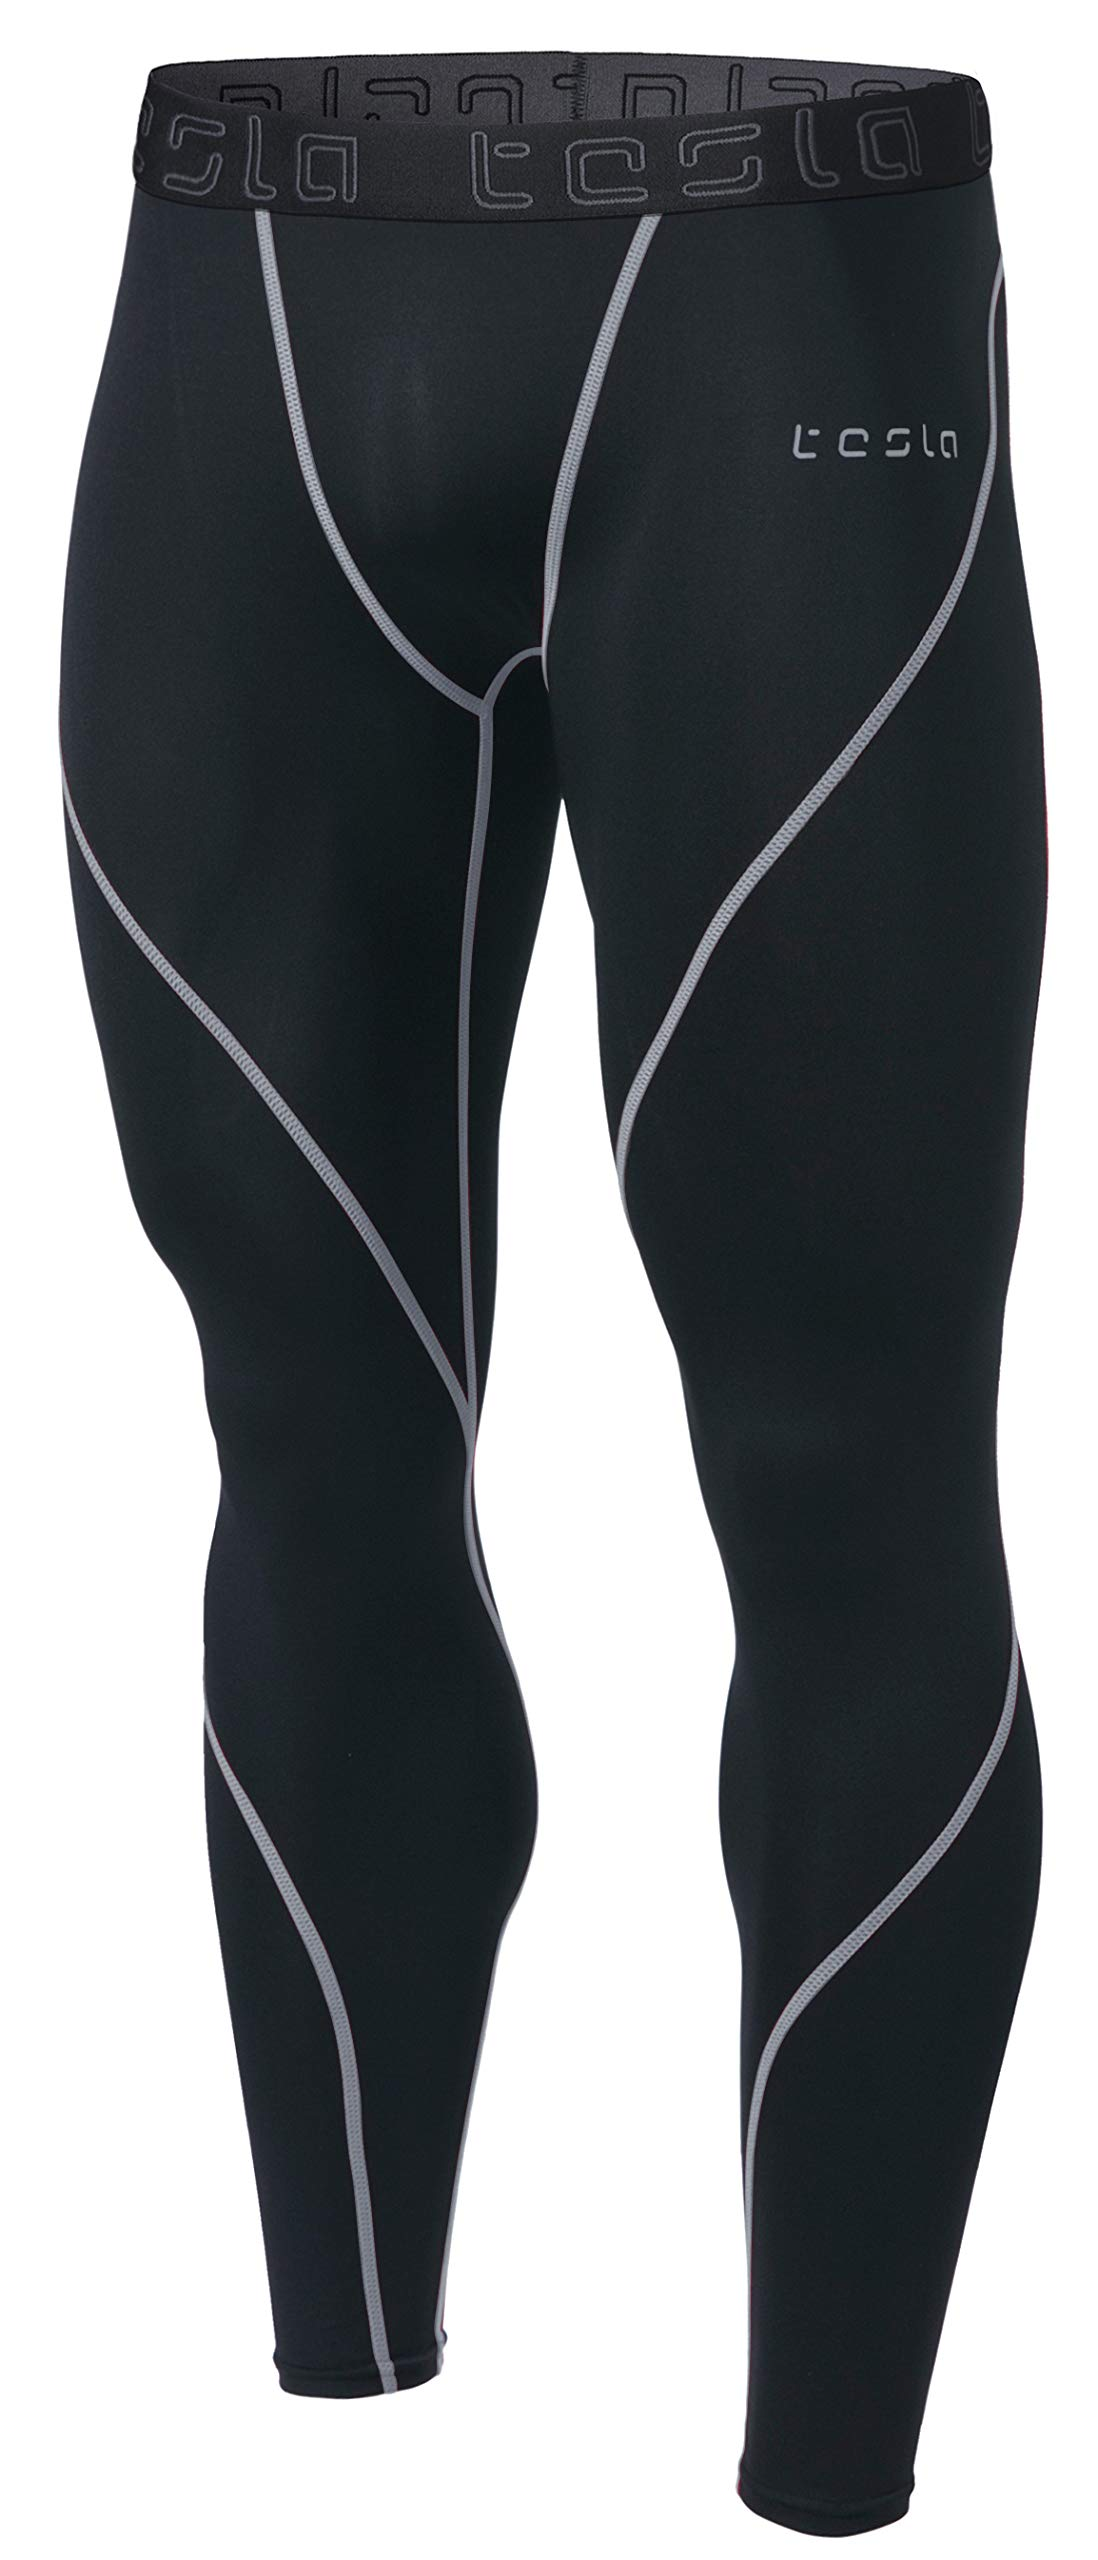 TSLA Men's Compression Pants Running Baselayer Cool Dry Sports Tights, A Athletic(mup19) - Black & Light Grey, 2X-Large